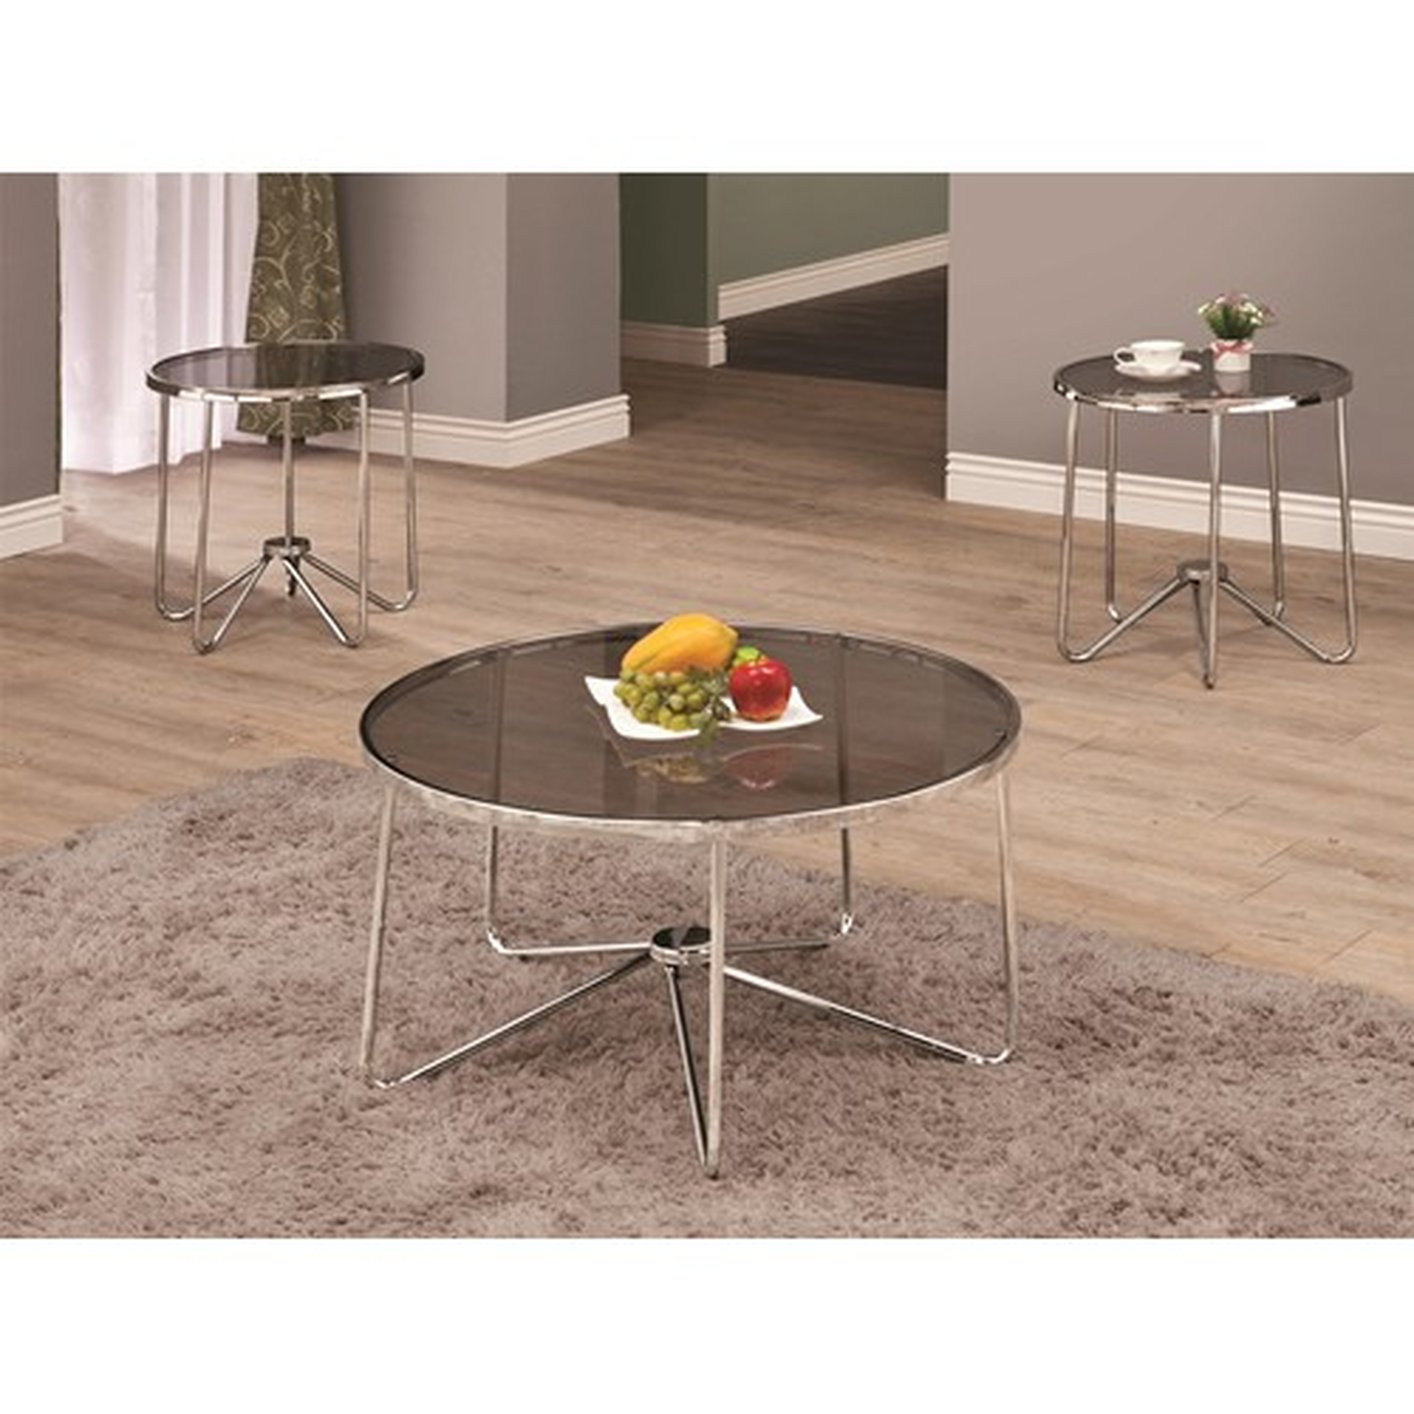 Coaster Lois 702335 Grey Glass Coffee Table Set Steal A Sofa Furniture Outlet Los Angeles Ca